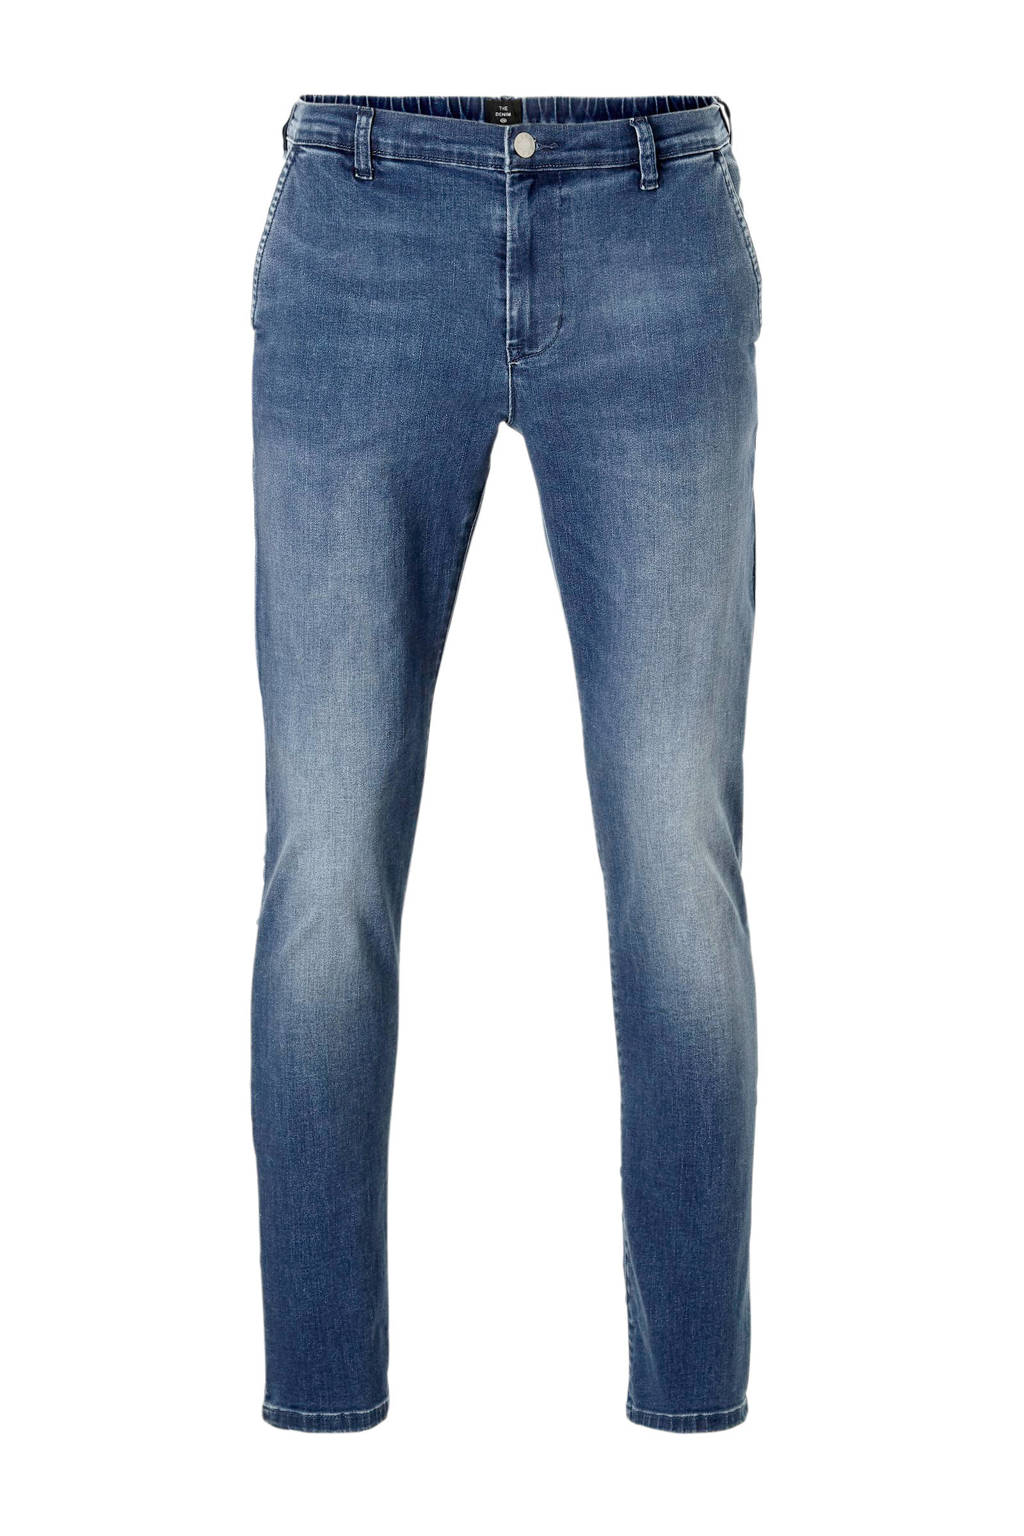 C&A The Denim tapered fit chino, MdBlue9